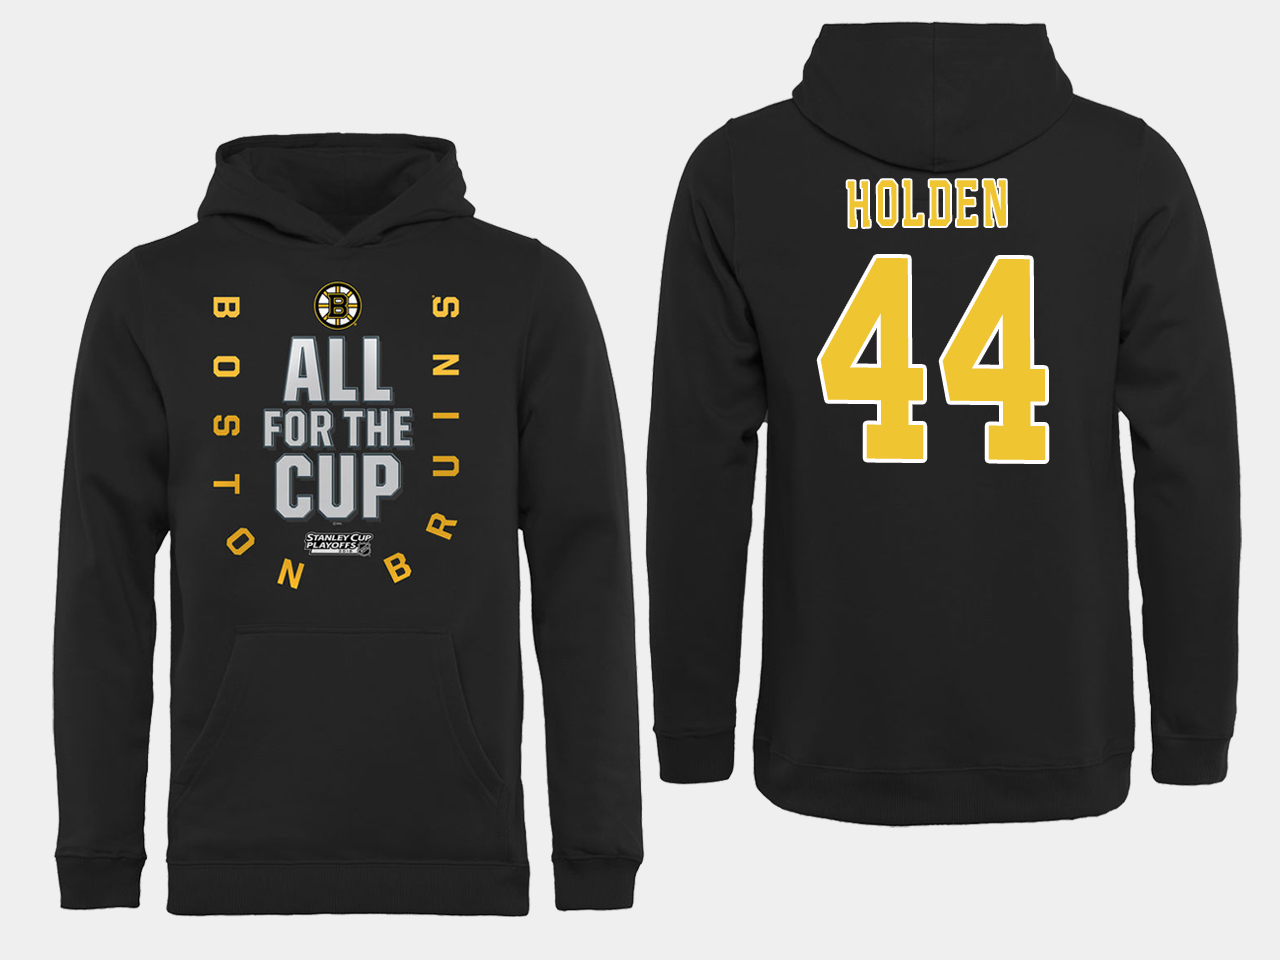 NHL Men Boston Bruins 44 Holden Black All for the Cup Hoodie